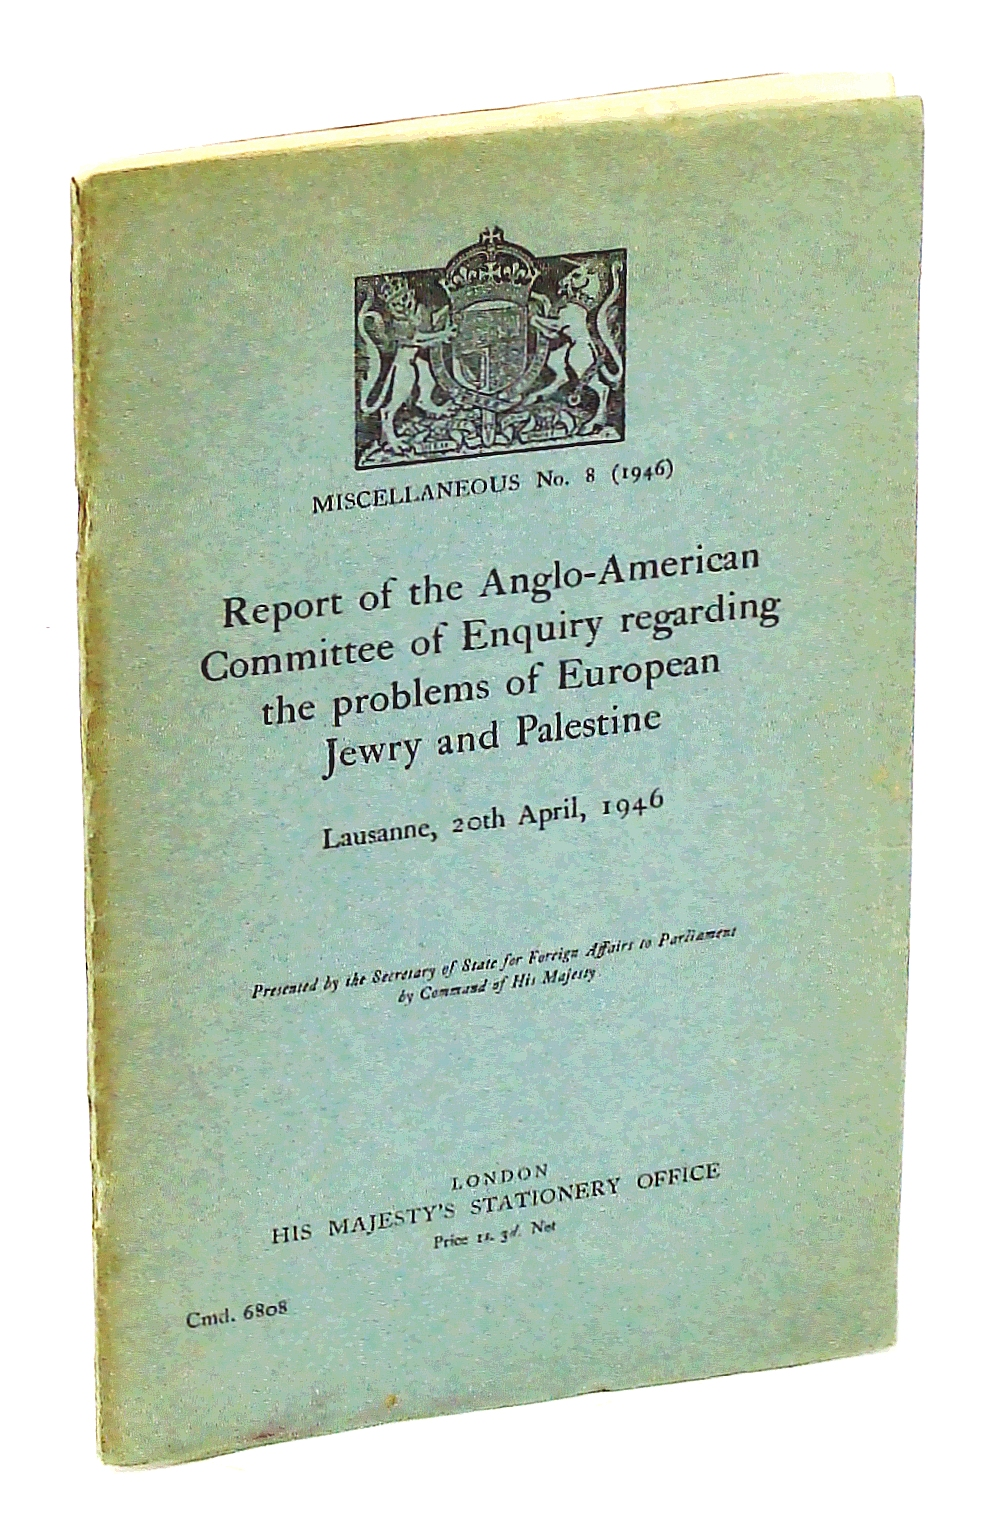 Image for Report of the Anglo-American Committee of Enquiry regarding the problems of European Jewry and Palestine : Lausanne, 20th April 1946